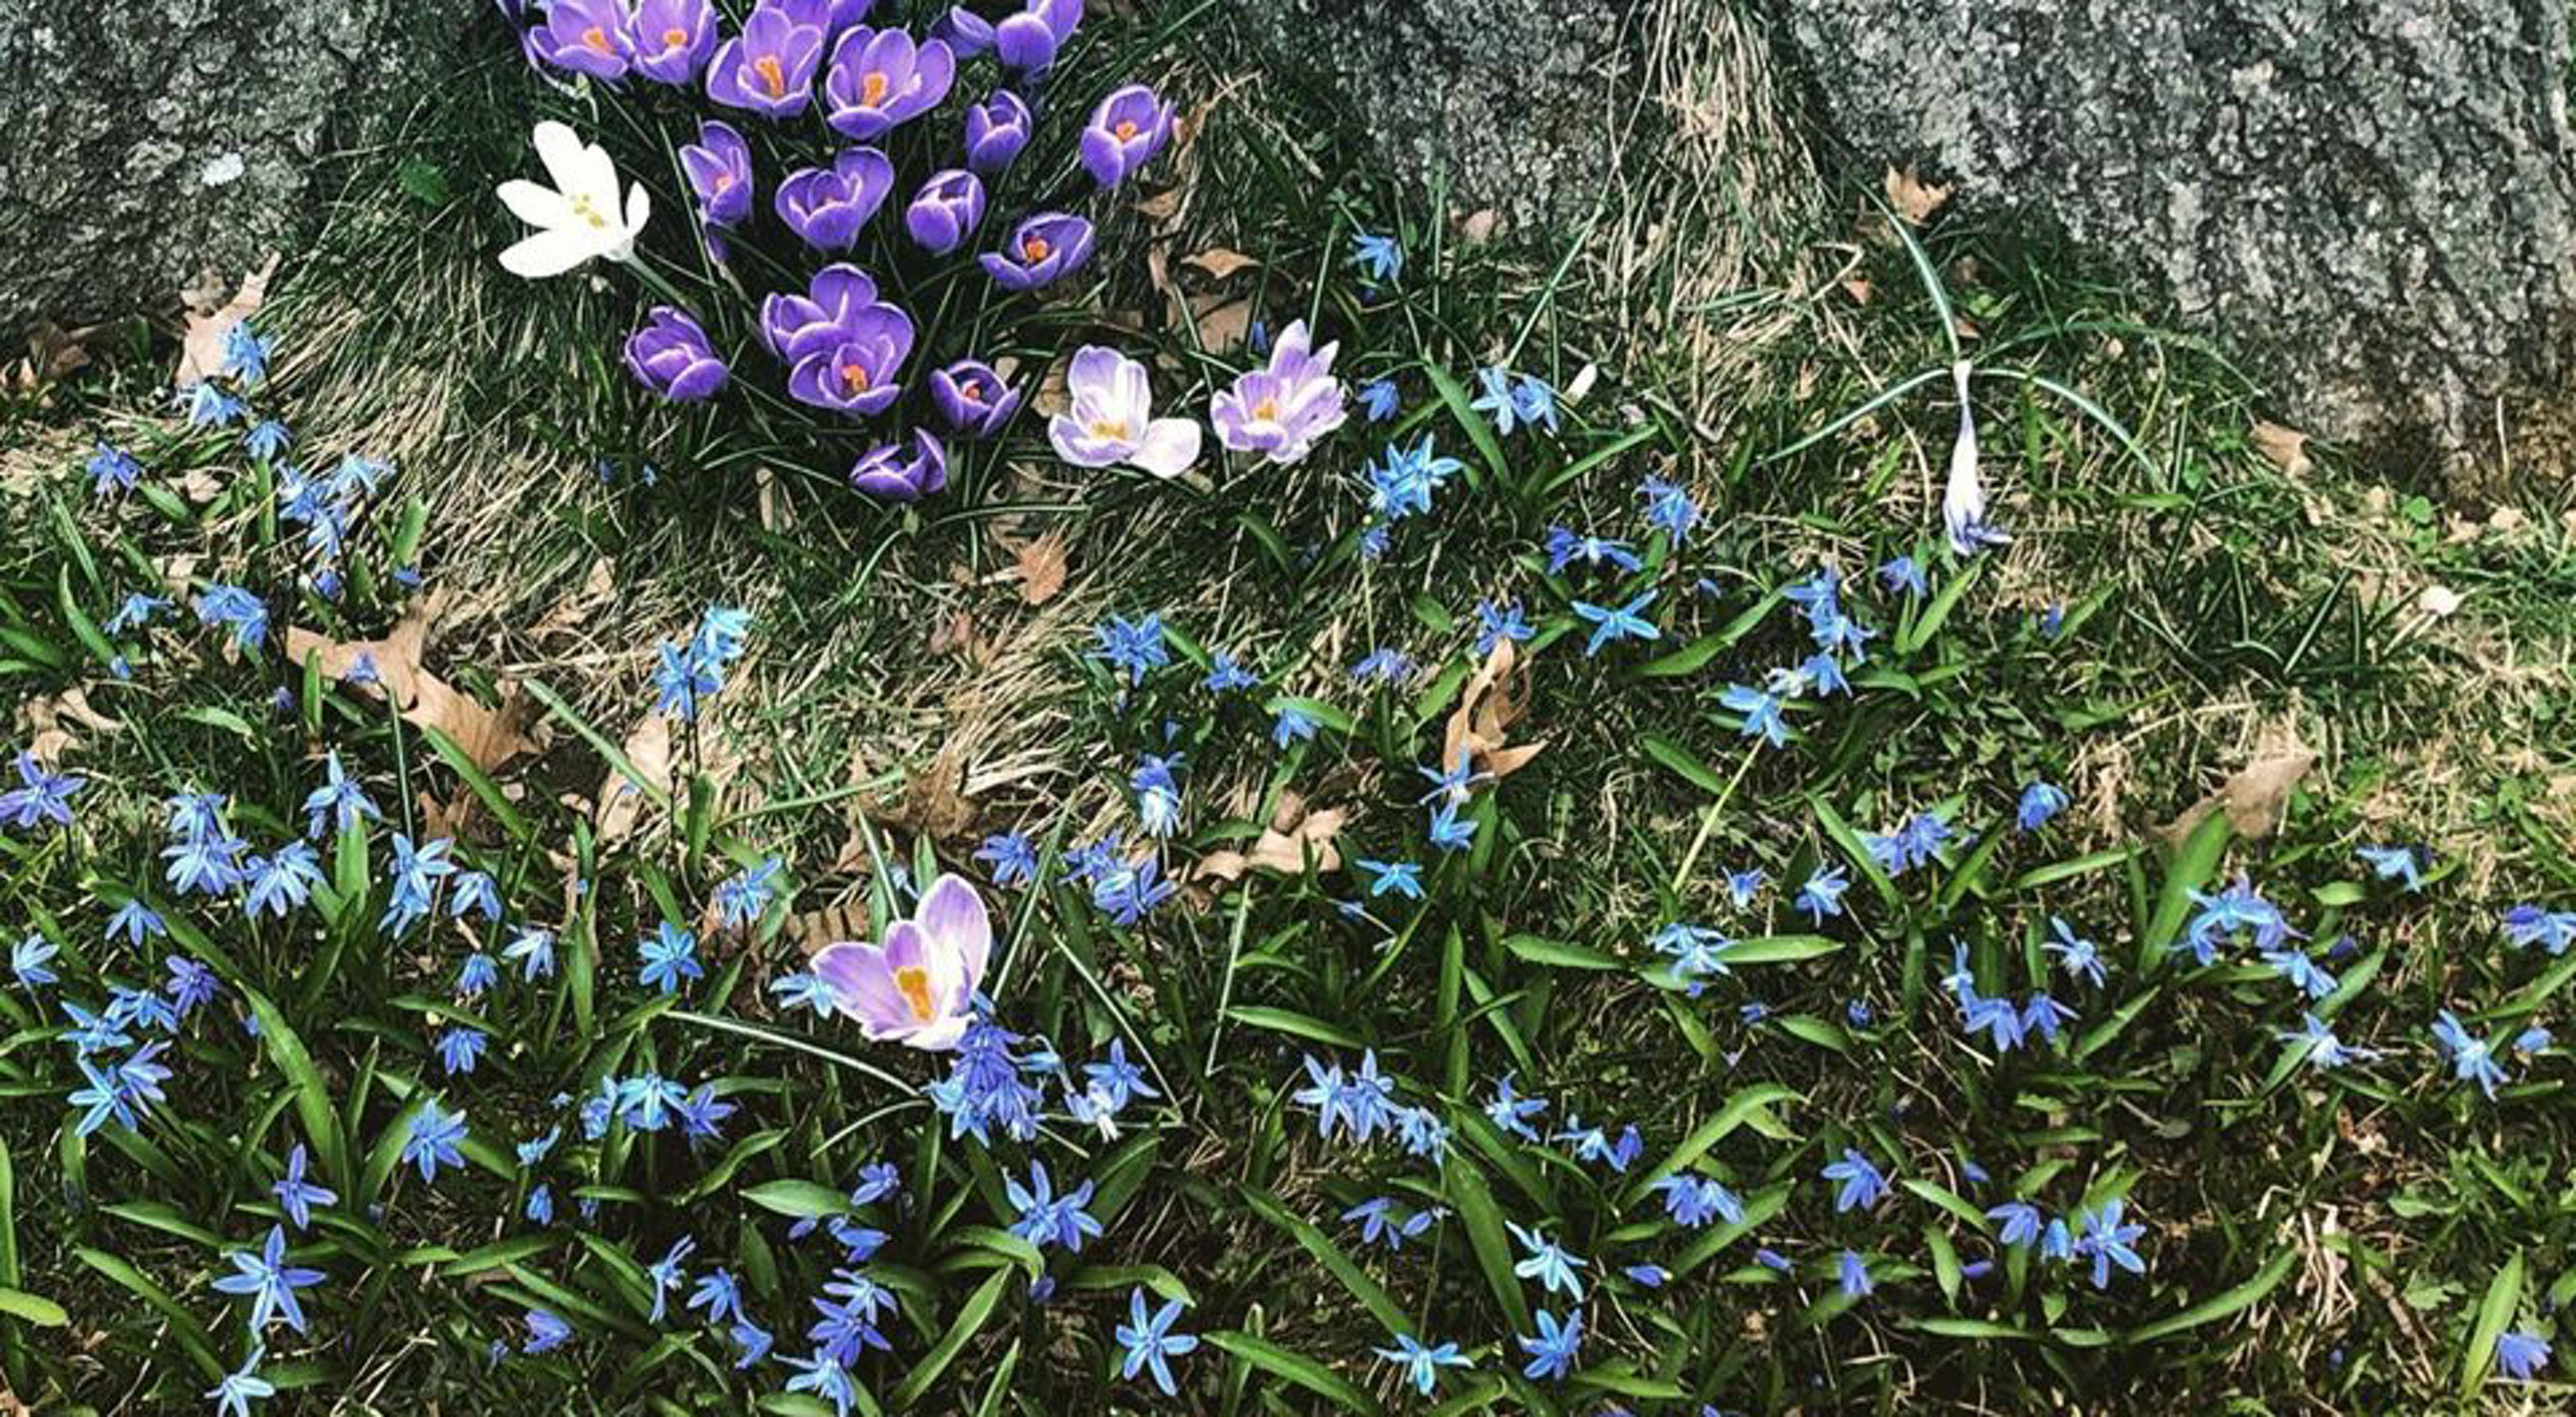 Wildflowers bloom at the base of a tree. A small cluster of purple crocus are surrounded by delicate blue blossoms.